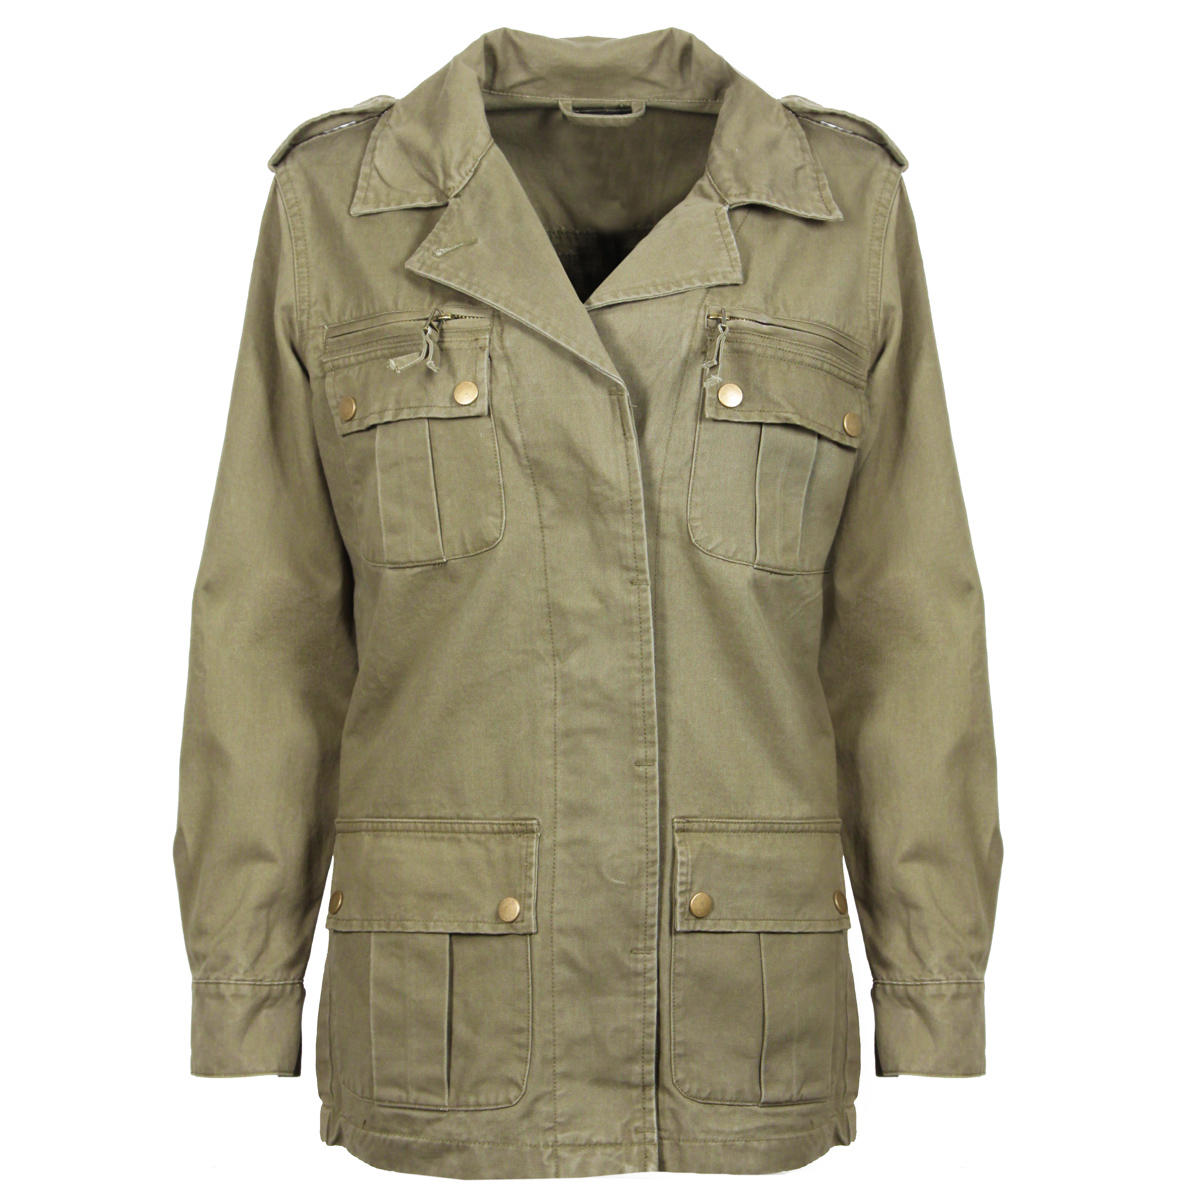 Find great deals on eBay for womens khaki military jacket. Shop with confidence.